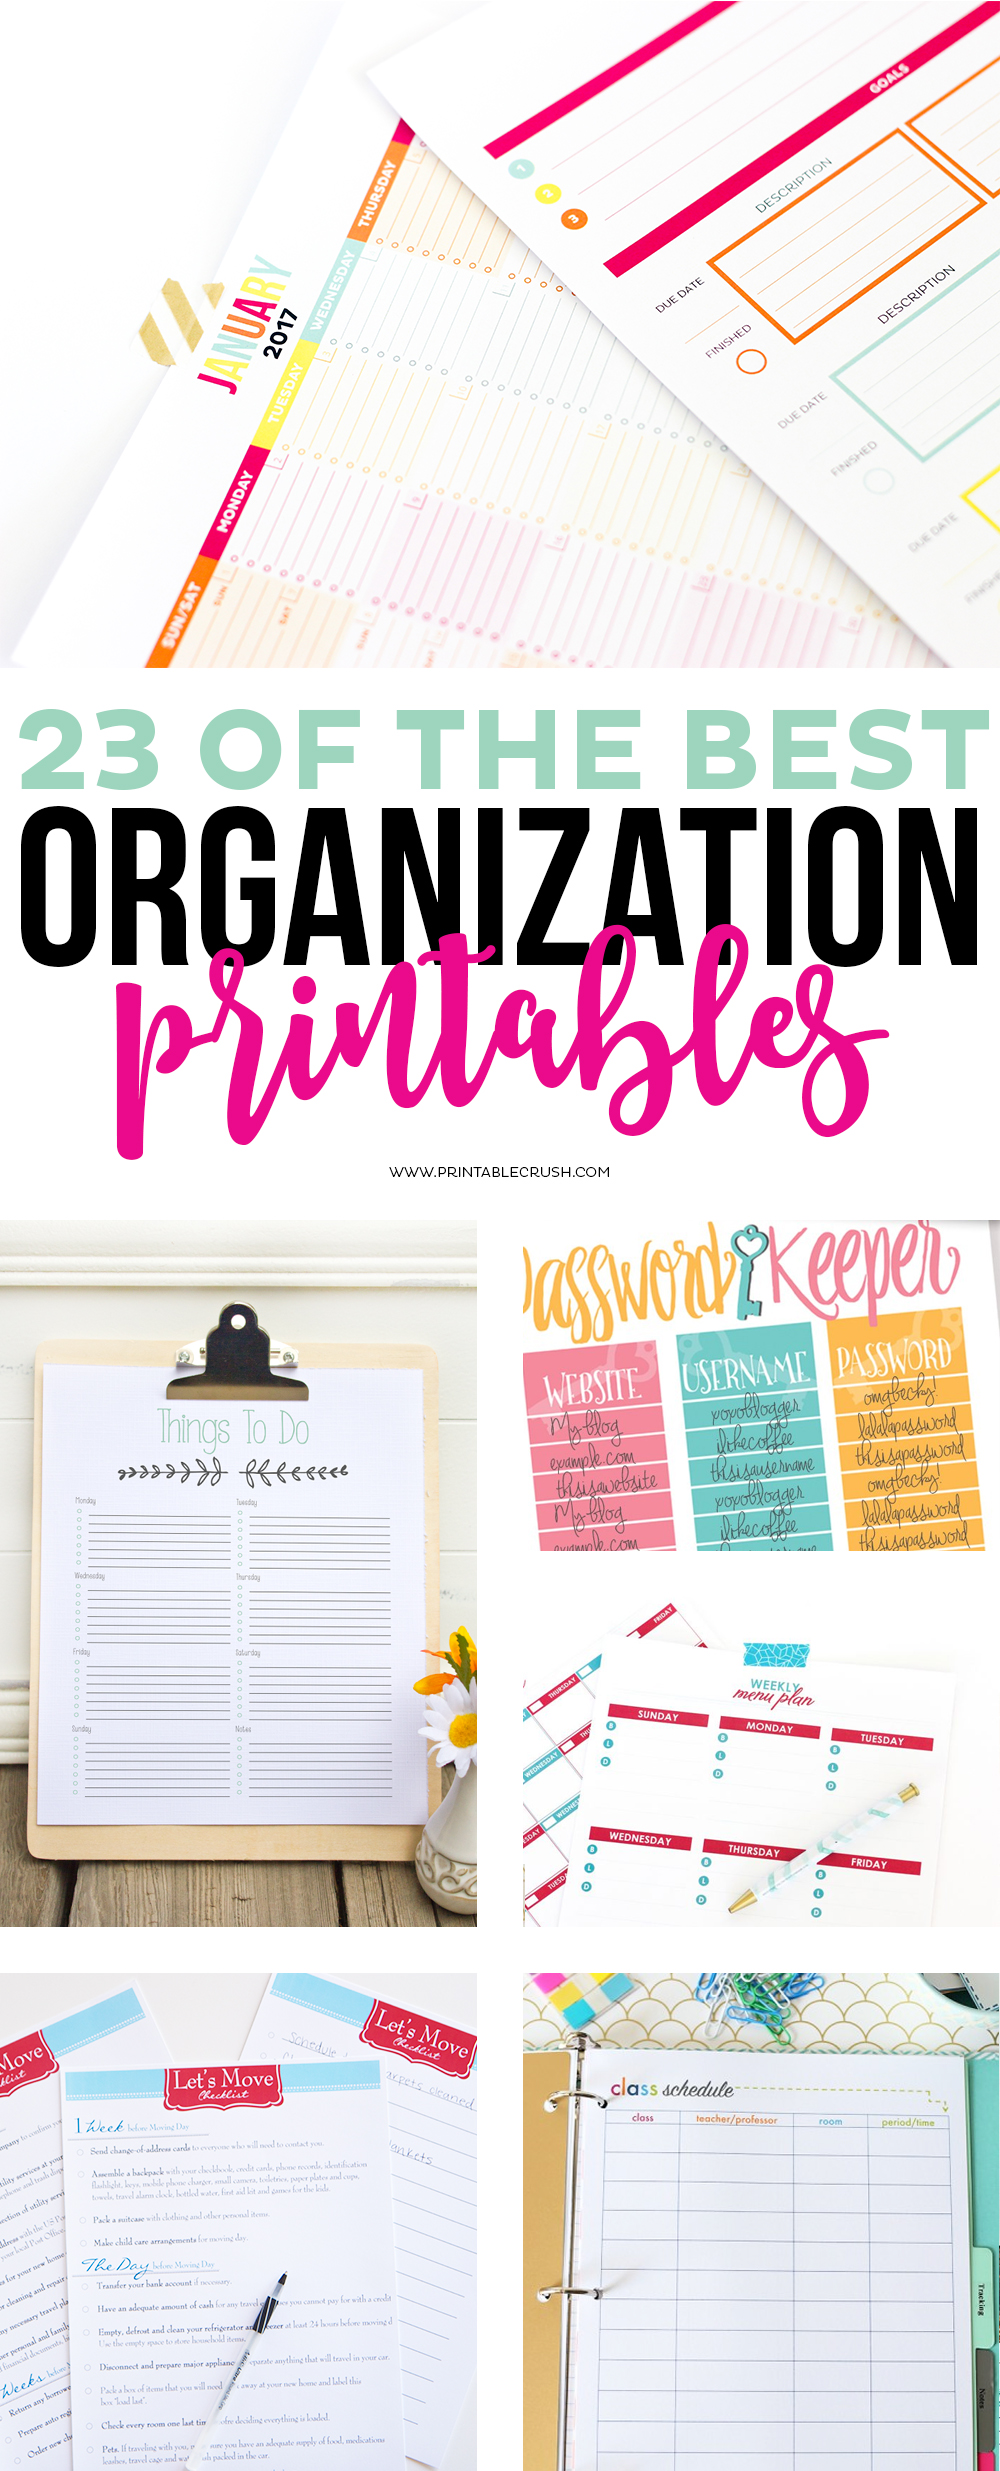 Organization Calendar Free : Of the best organization printables printable crush